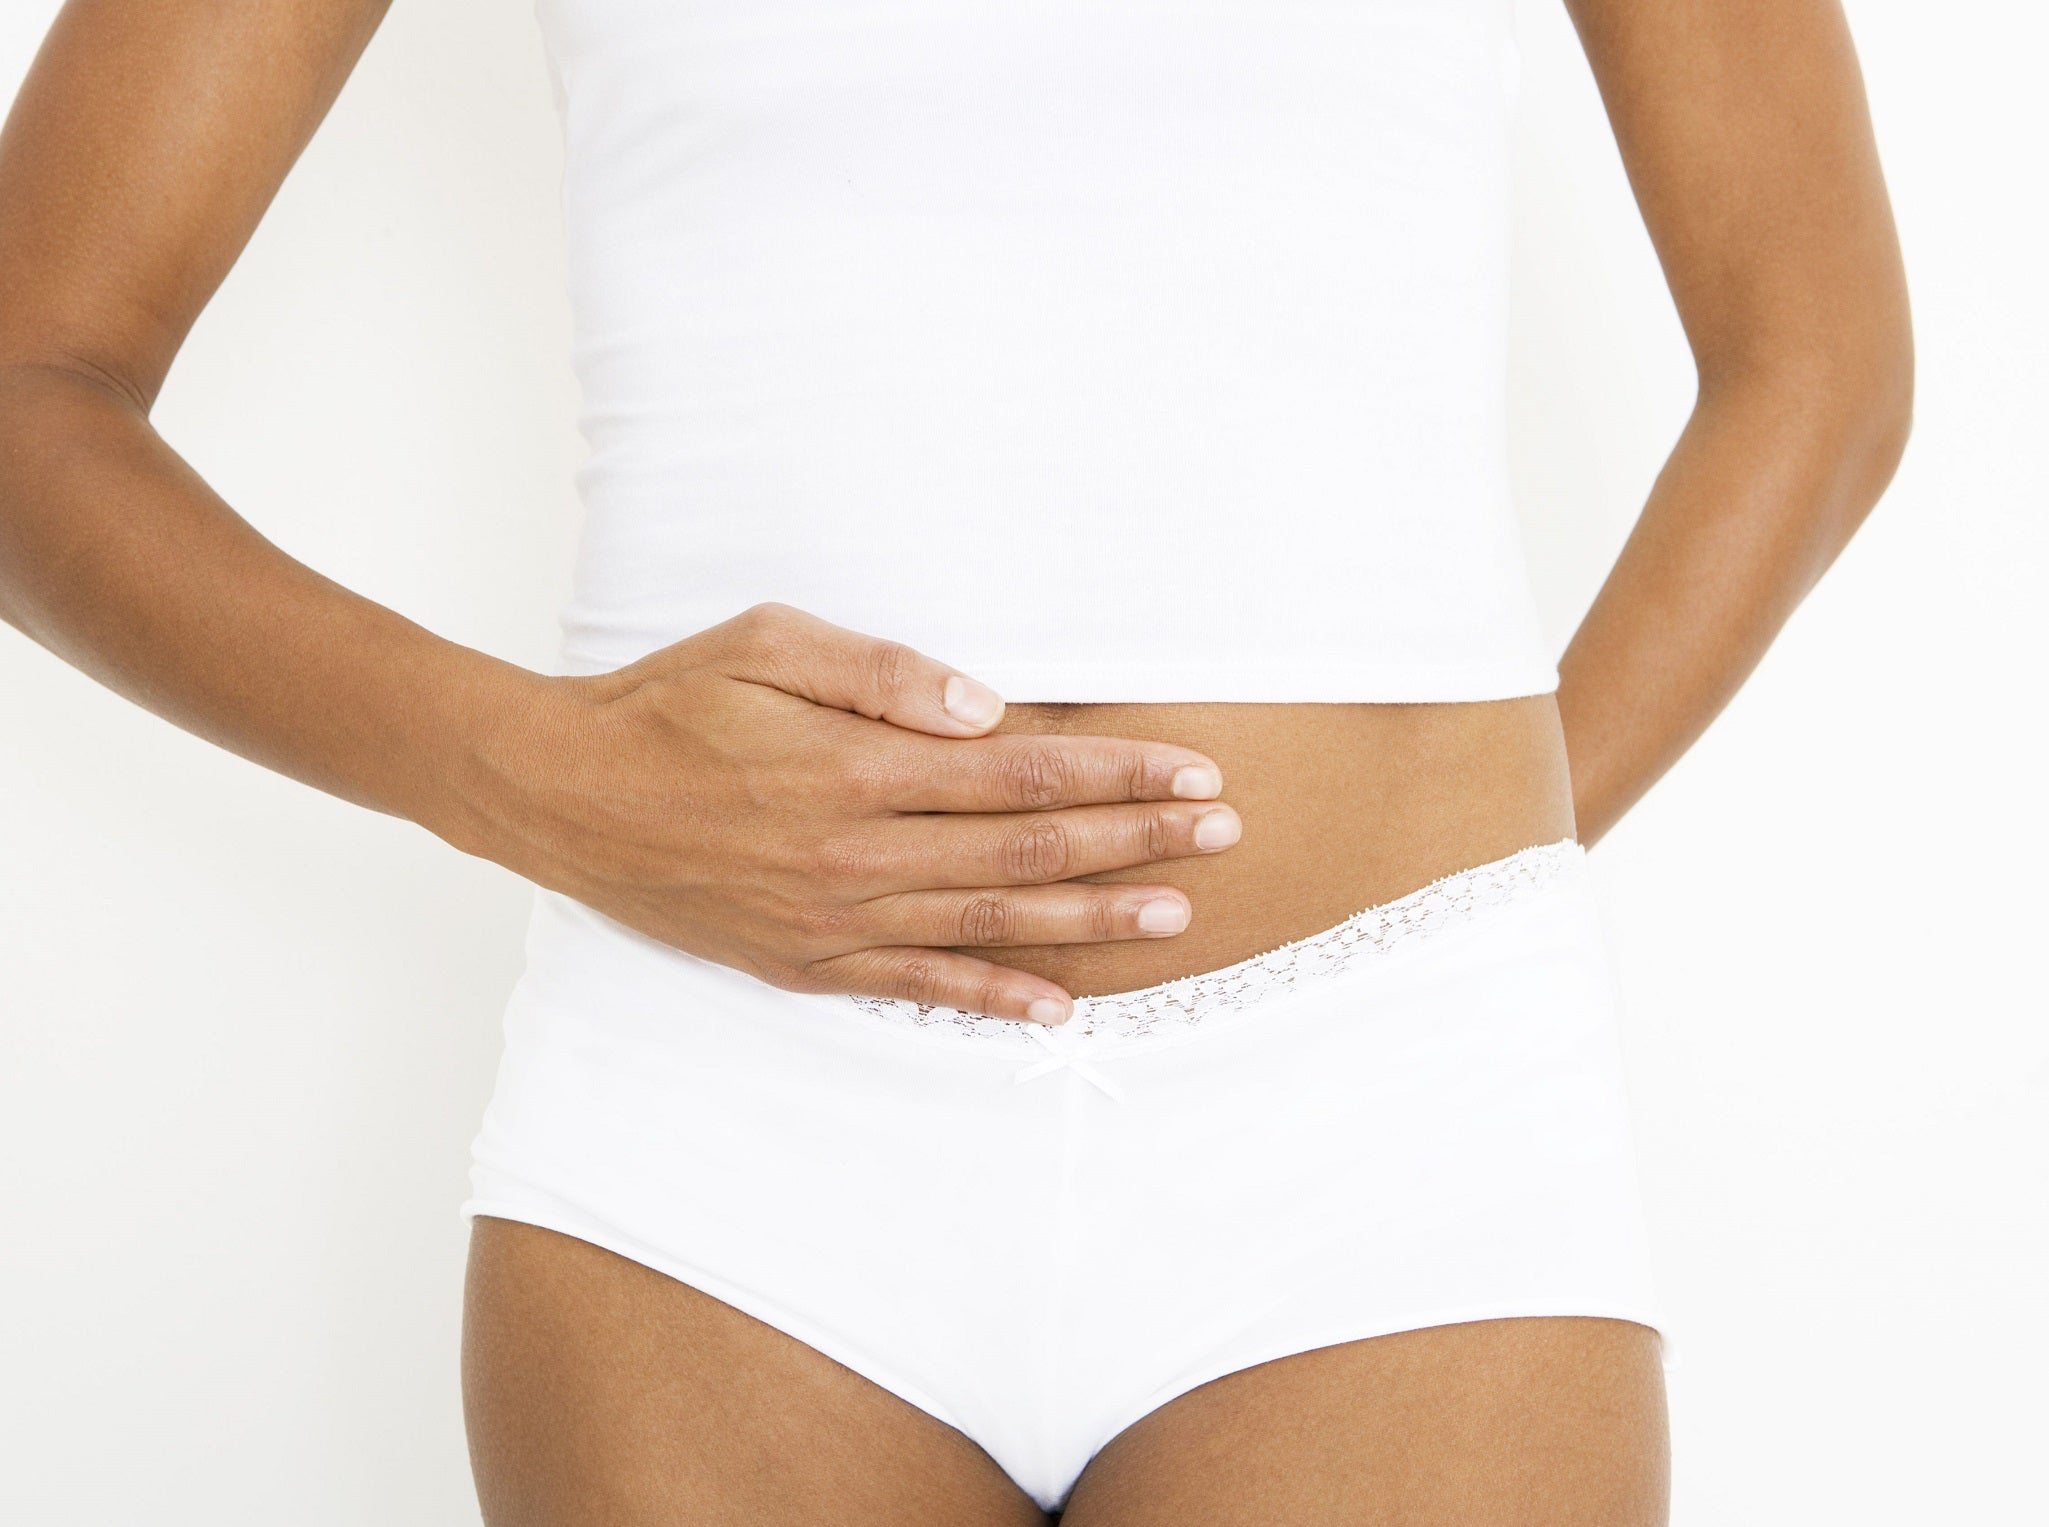 Endometriosis: Millions of women suffering due to chronic lack of research